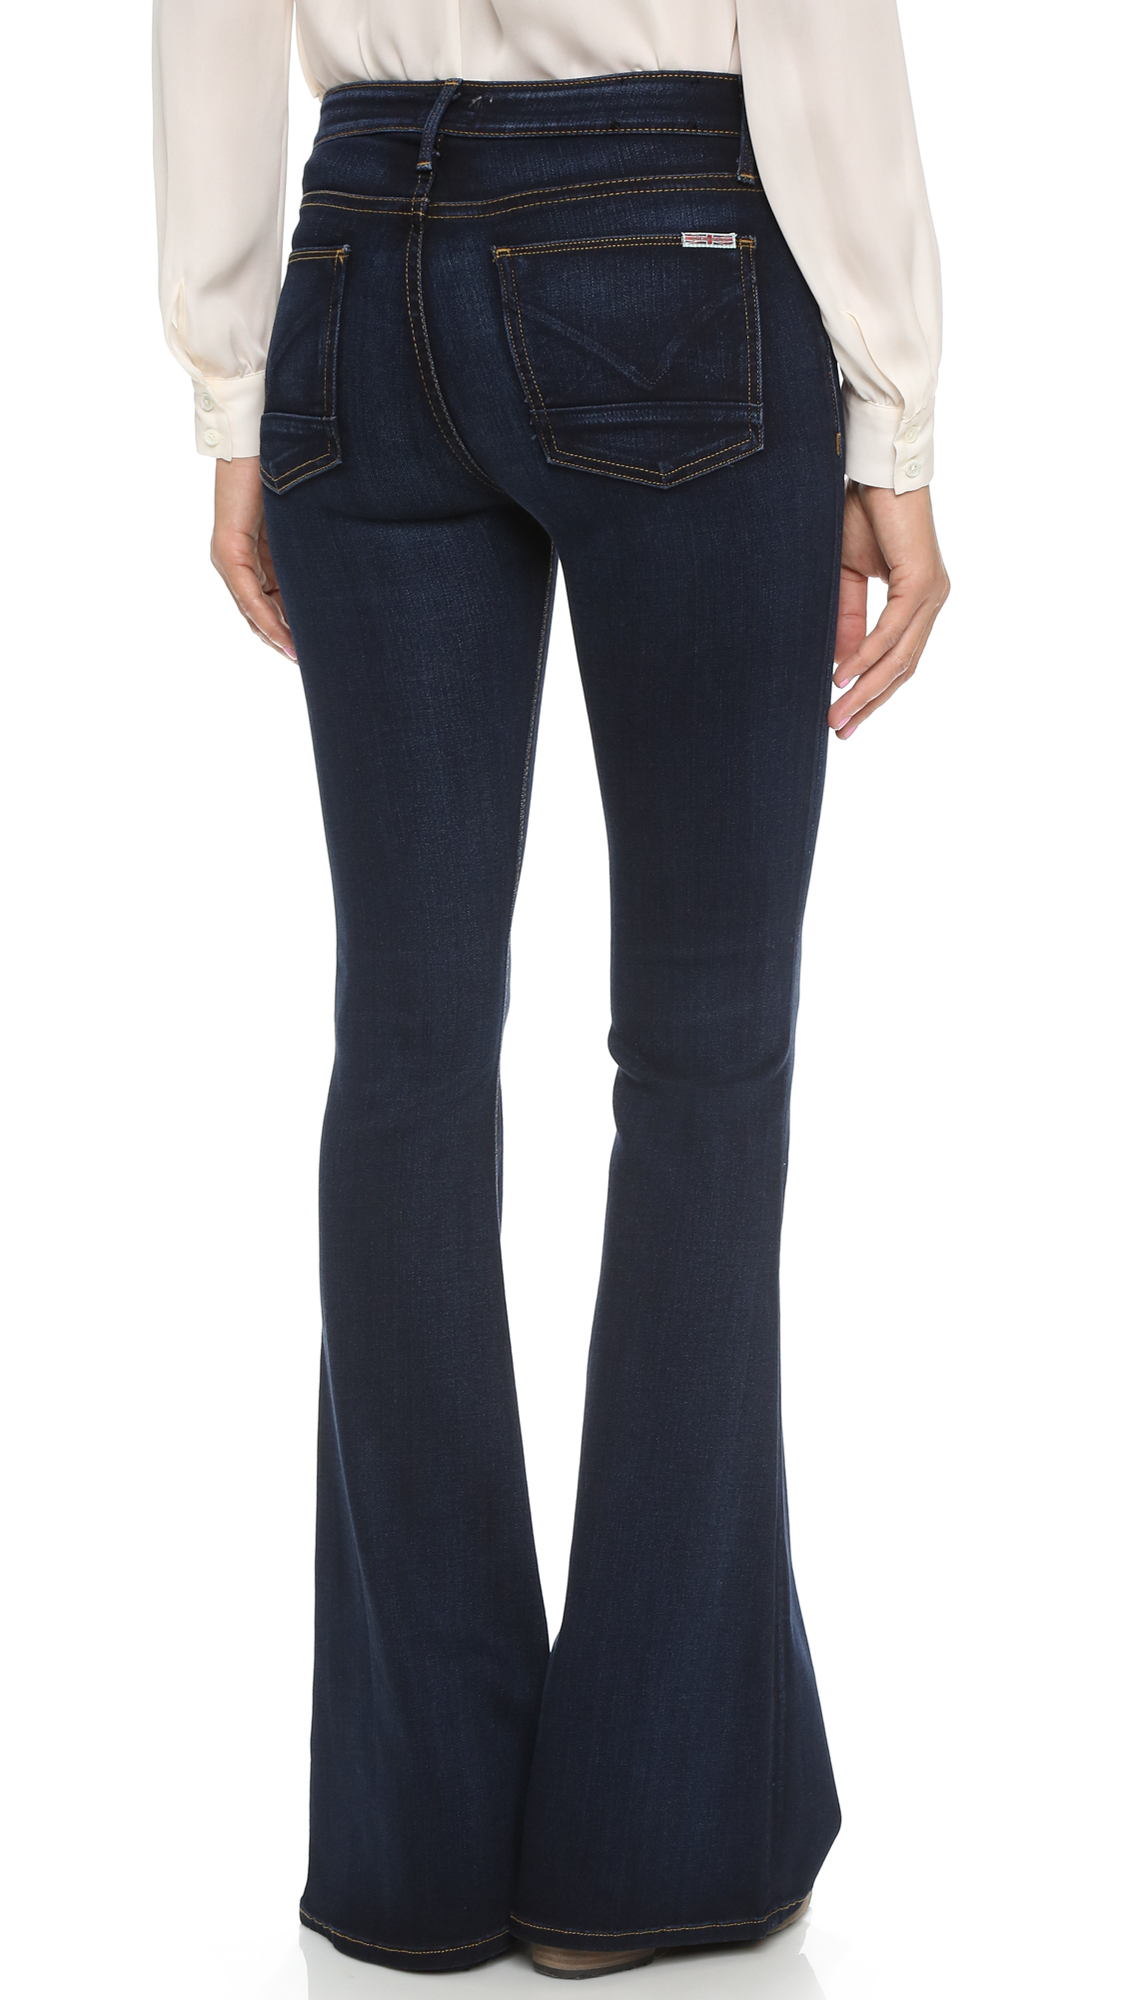 Hudson jeans Mia Flare Jeans - Oracle in Blue | Lyst